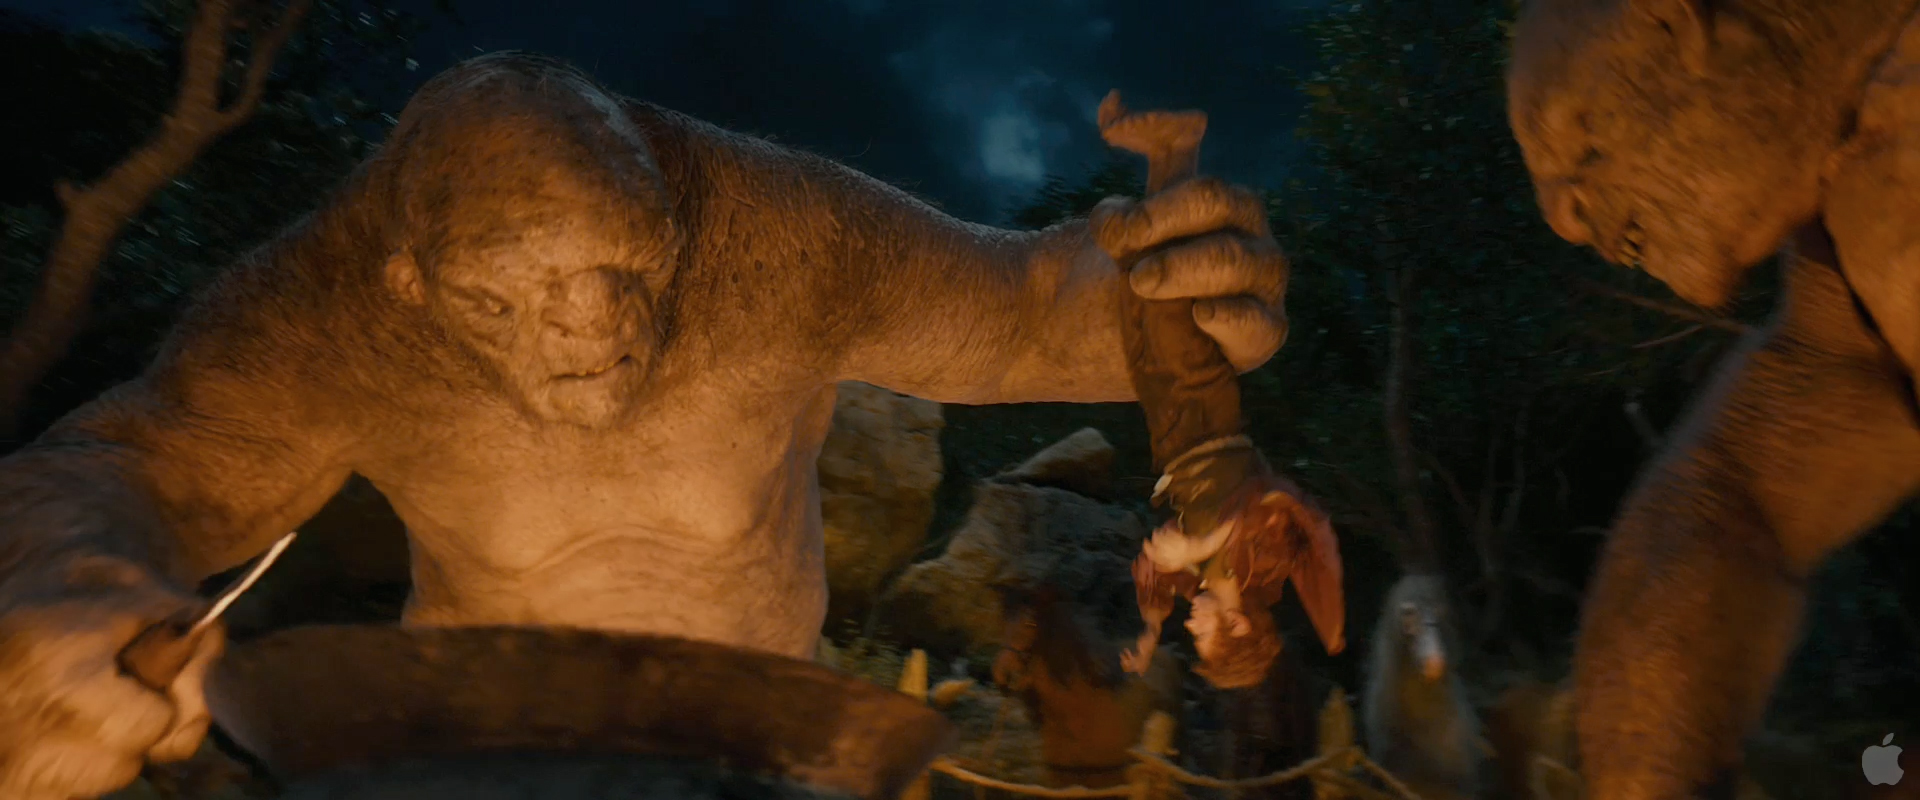 a literary analysis of bilbo baggins in the hobbit Bilbo baggins, the protagonist of the hobbit, is one of a race of creatures about  half the size of humans, beardless and with hairy feet he lives in an unspeci.